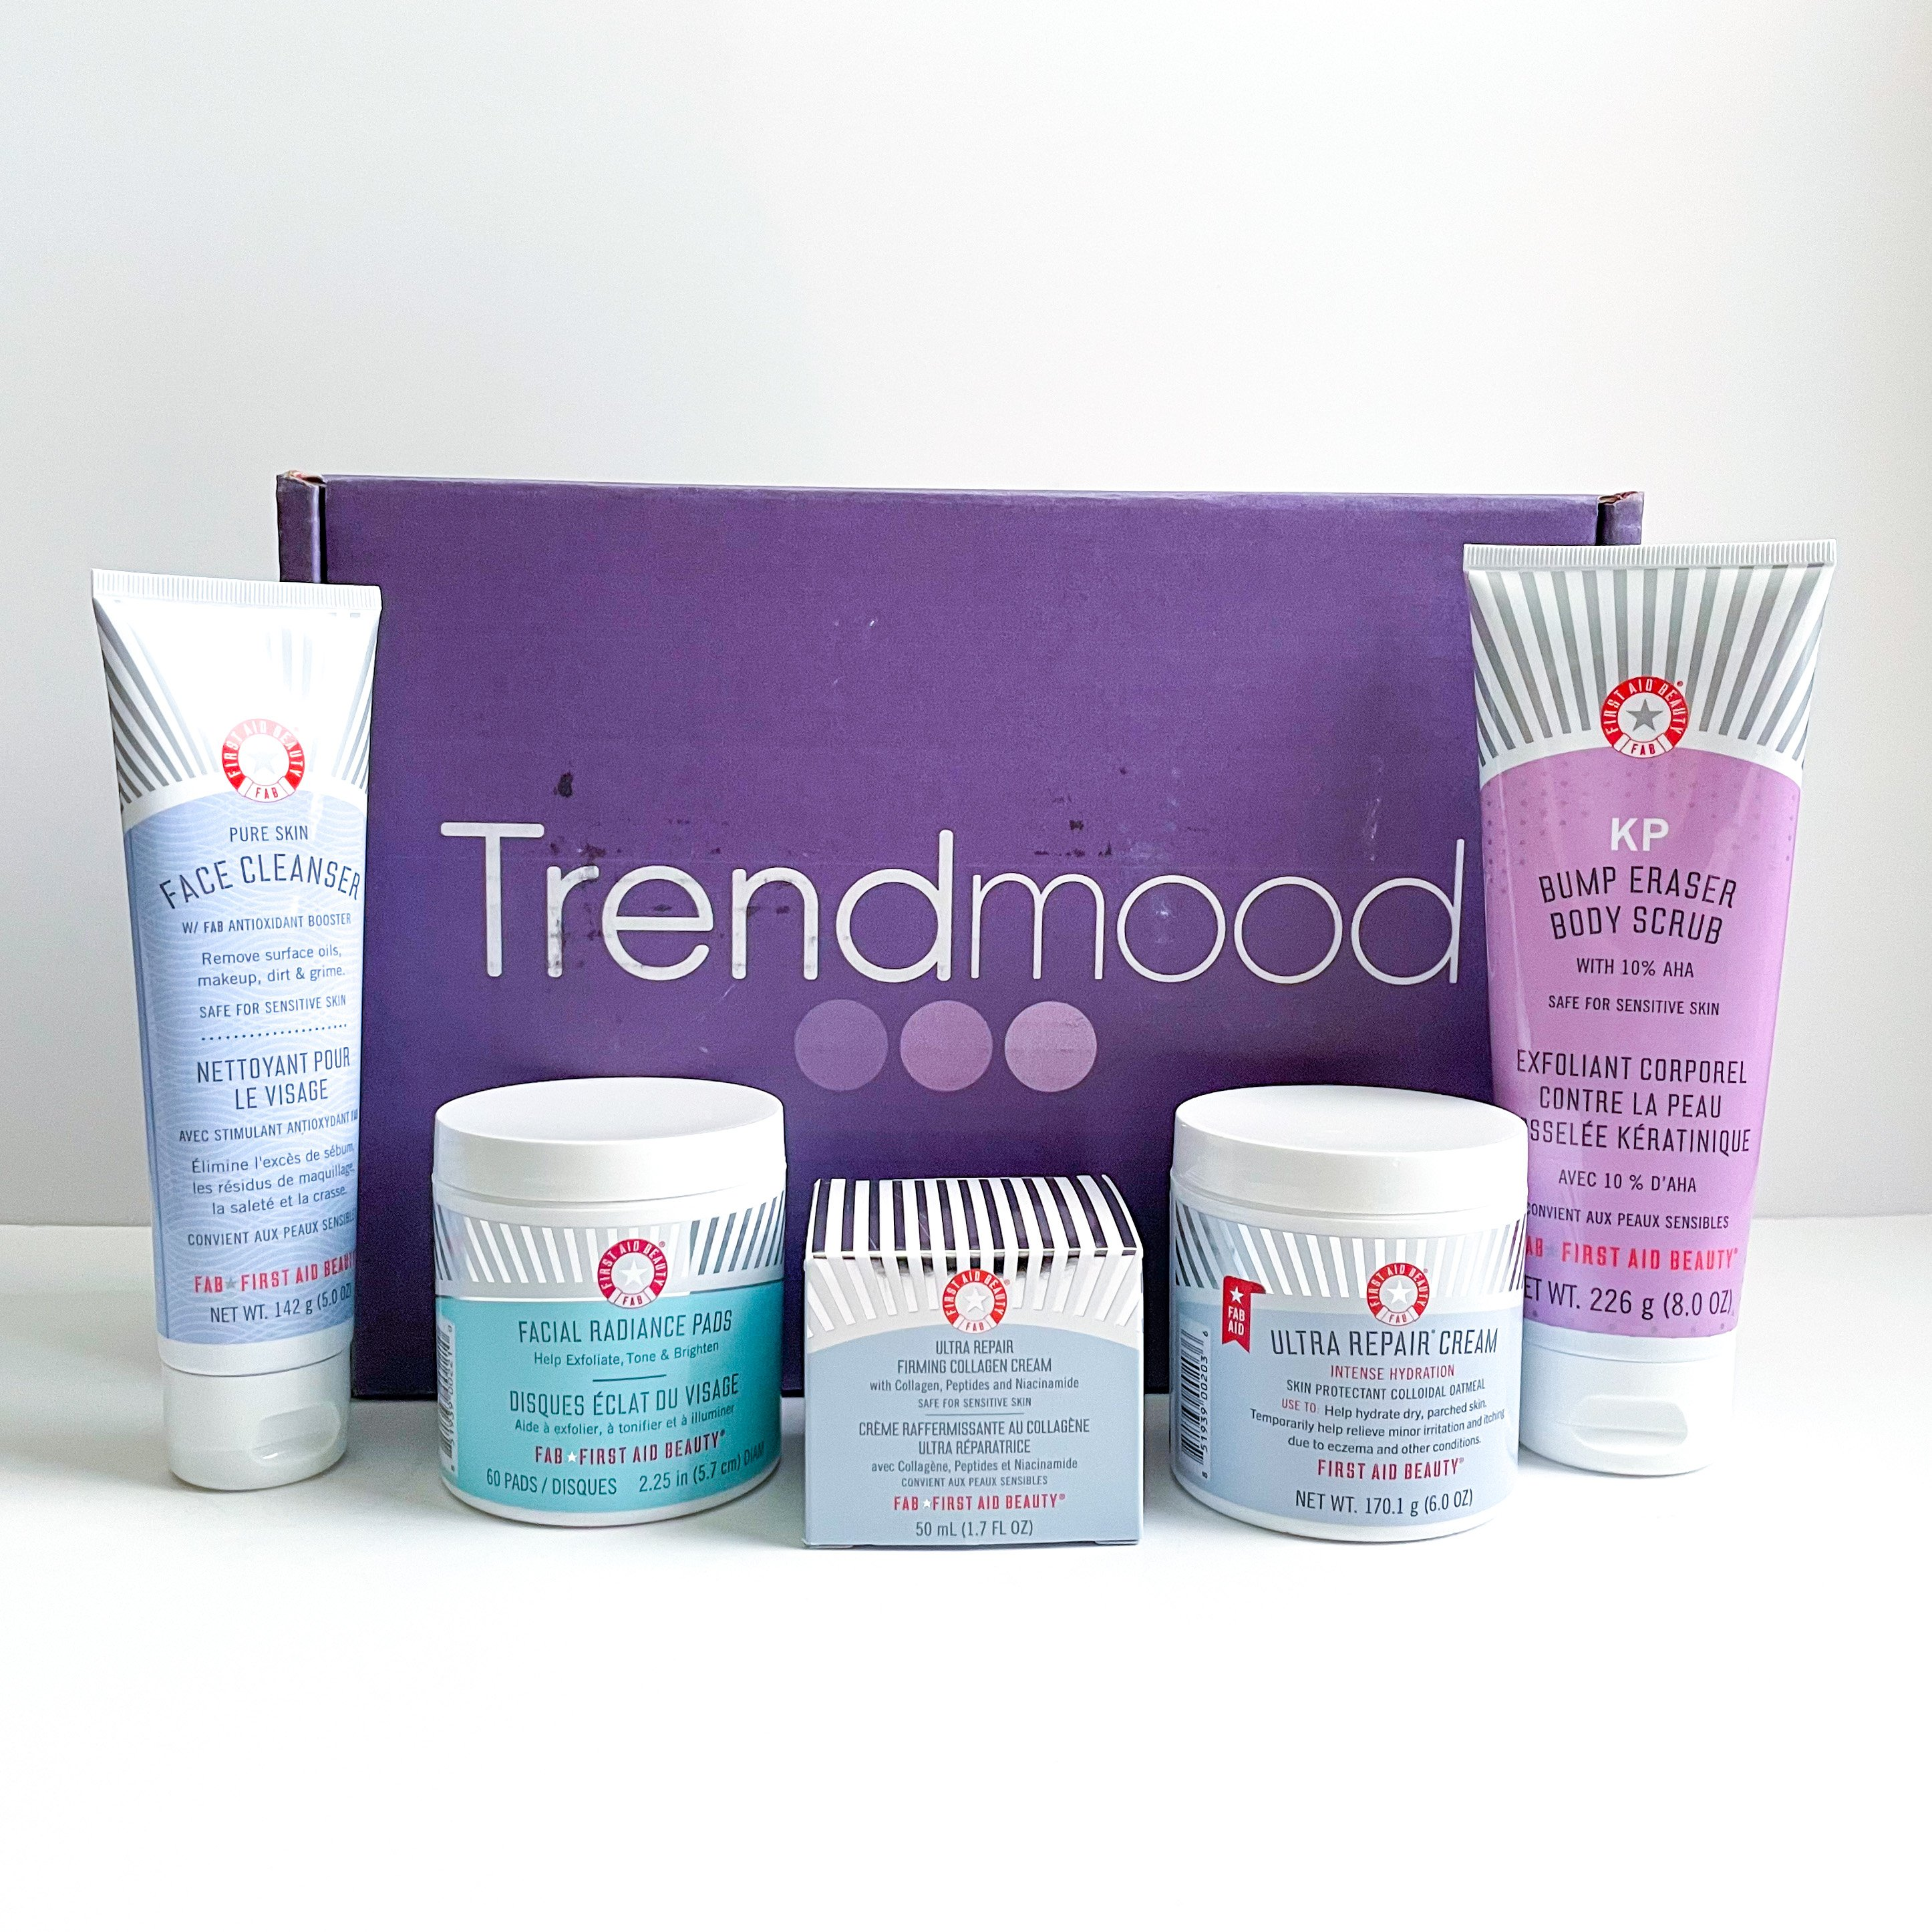 Trendmood x First Aid Beauty Beauty Box Review